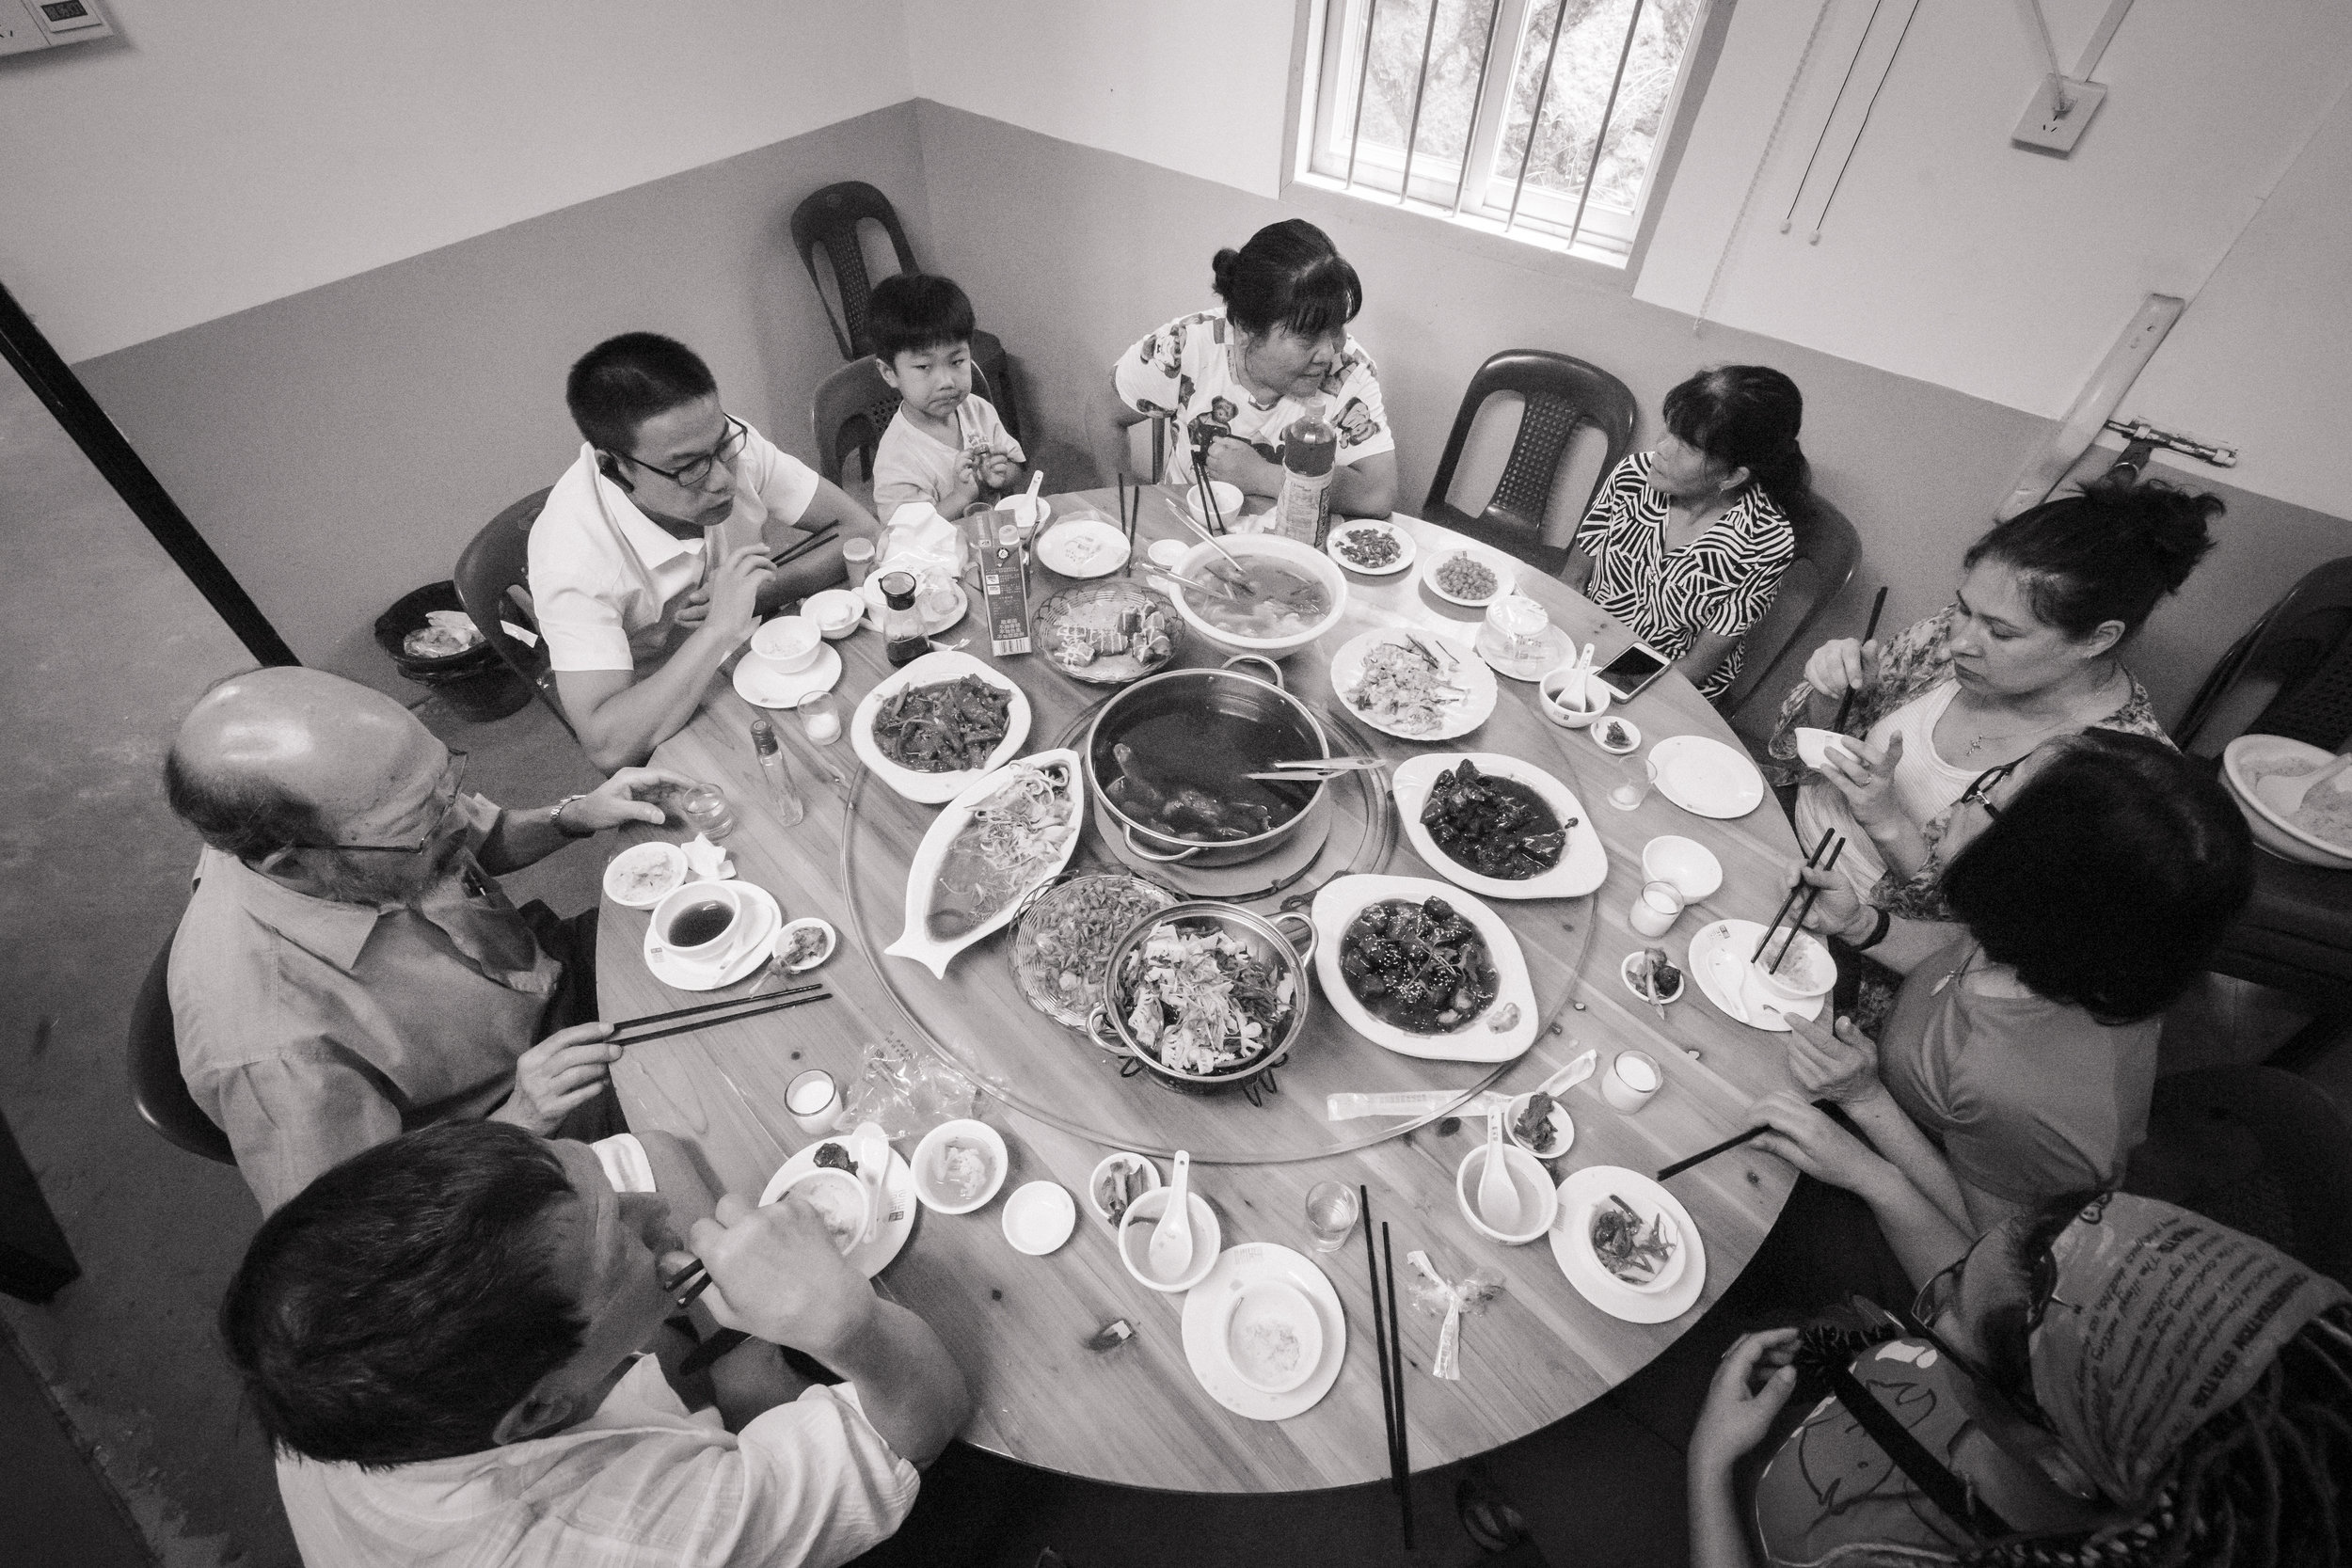 We shared a meal with the poorest of our family, who gave generously